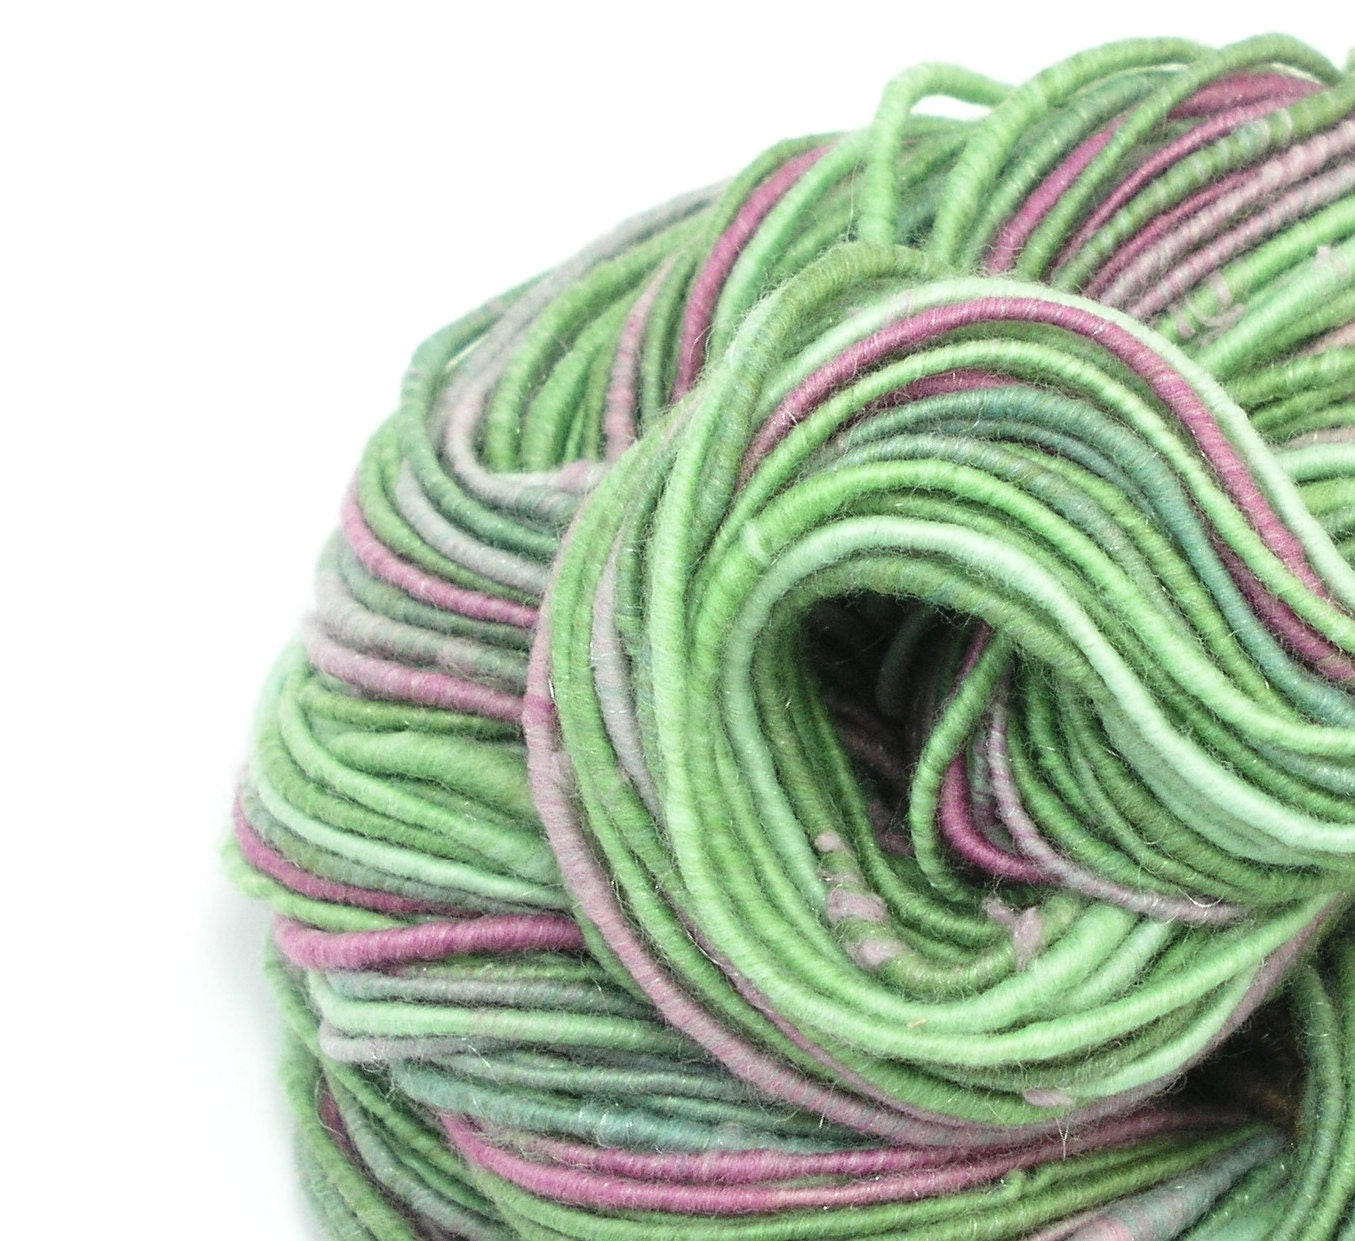 Super Bulky Yarn : Corespun Yarn Super Bulky Yarn Handspun Yarn by TheSavvyStitch